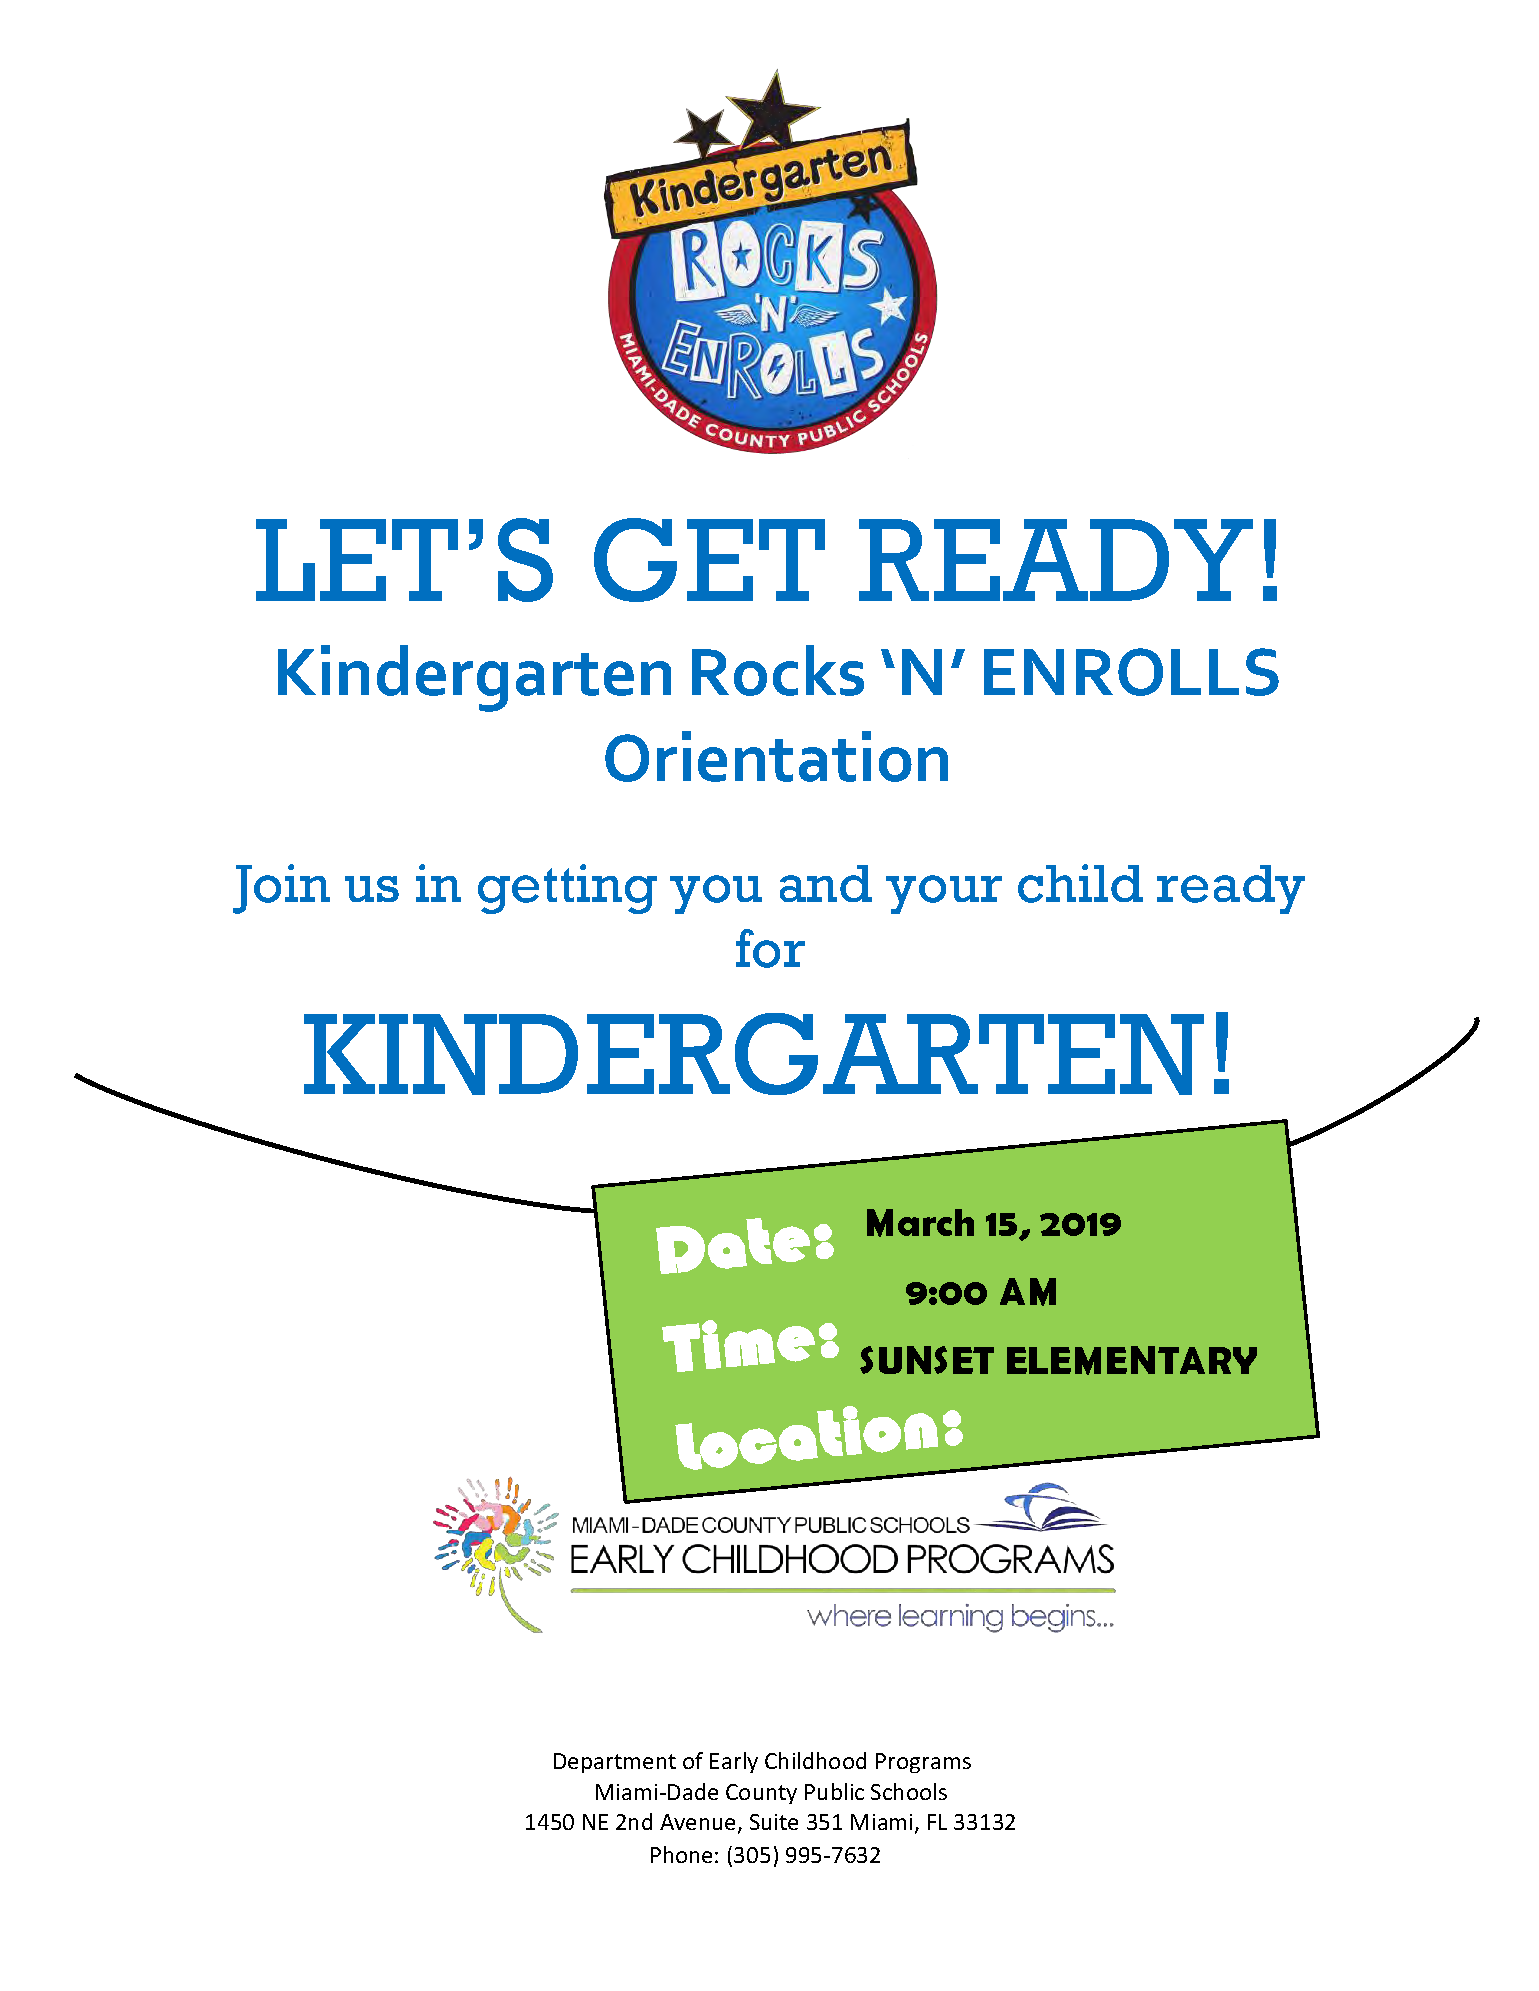 Kindergarten Rocks 'N' ENROLLS Orientation